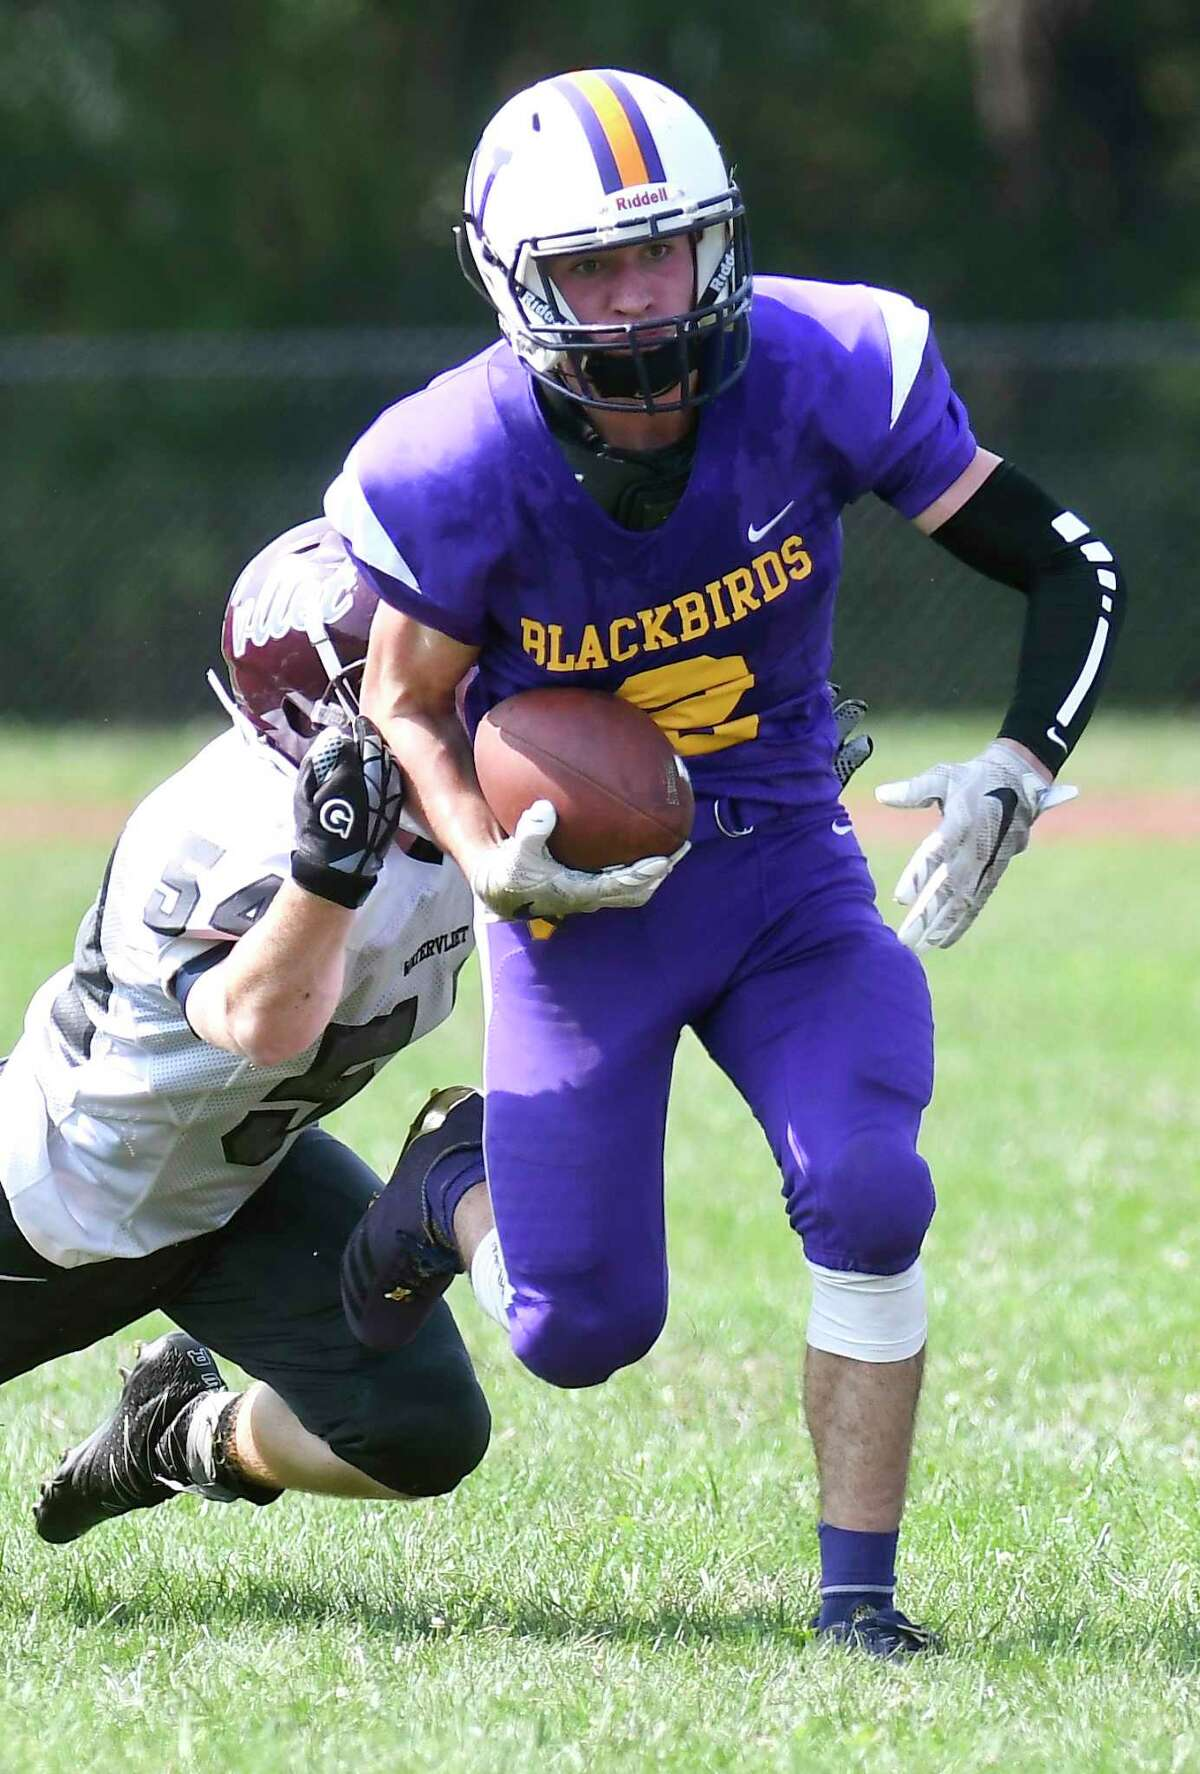 IAN OWENS, VOORHEESVILLE FOOTBALL: Hauled in four passes for 138 yards and three touchdowns as the Blackbirds defeated Coxsackie-Athens 27-6.